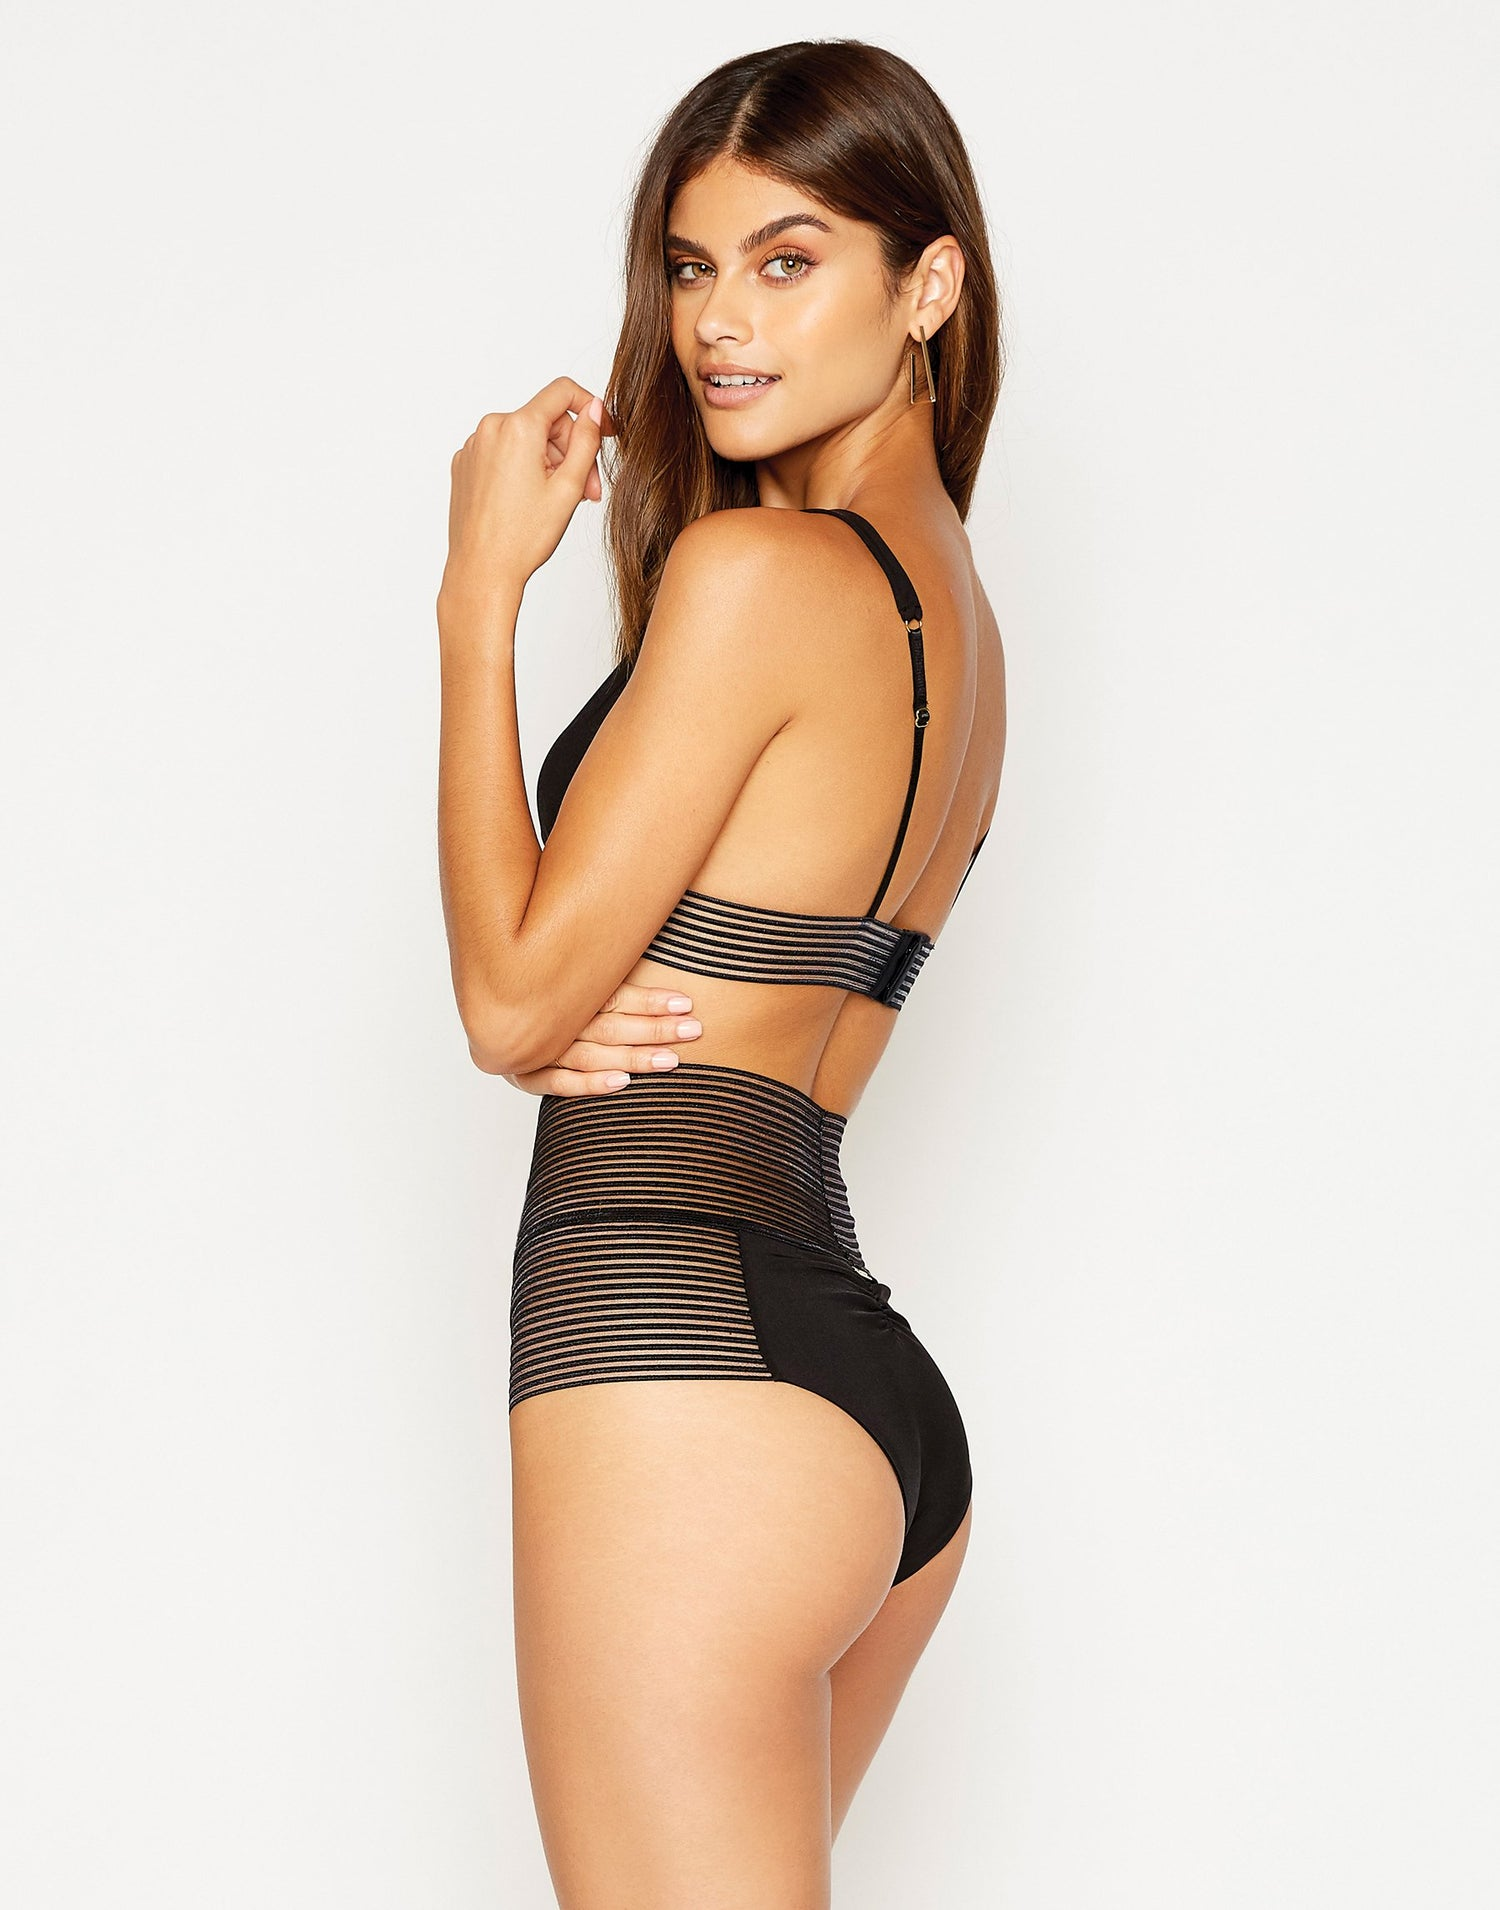 Sheer Addiction High Apex Bikini Top in Black with Sheer Elastic Stripes - side view